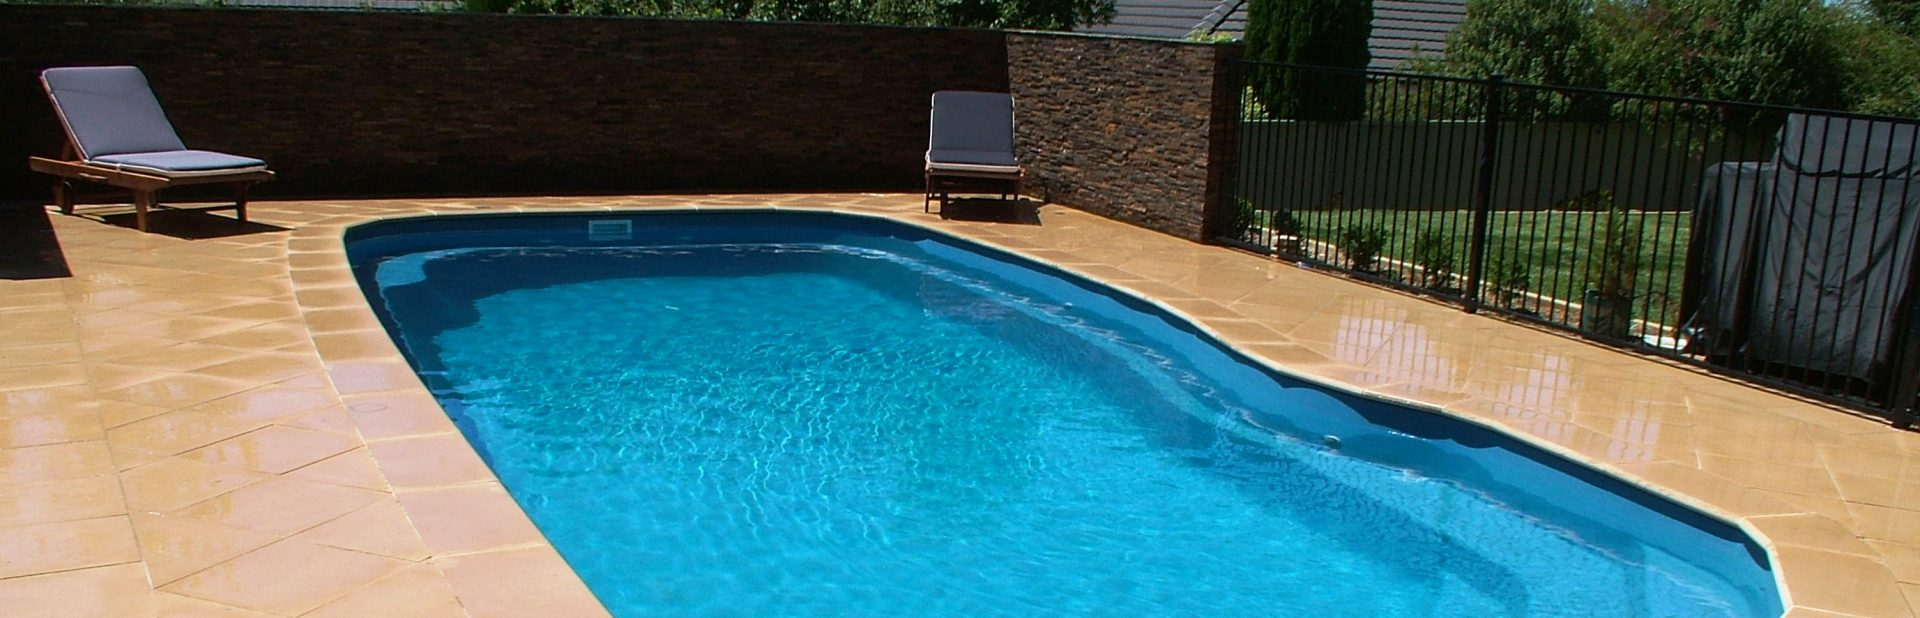 The Pool Medic Swimming Pool Cleaners Maintenance Service In Melbourne